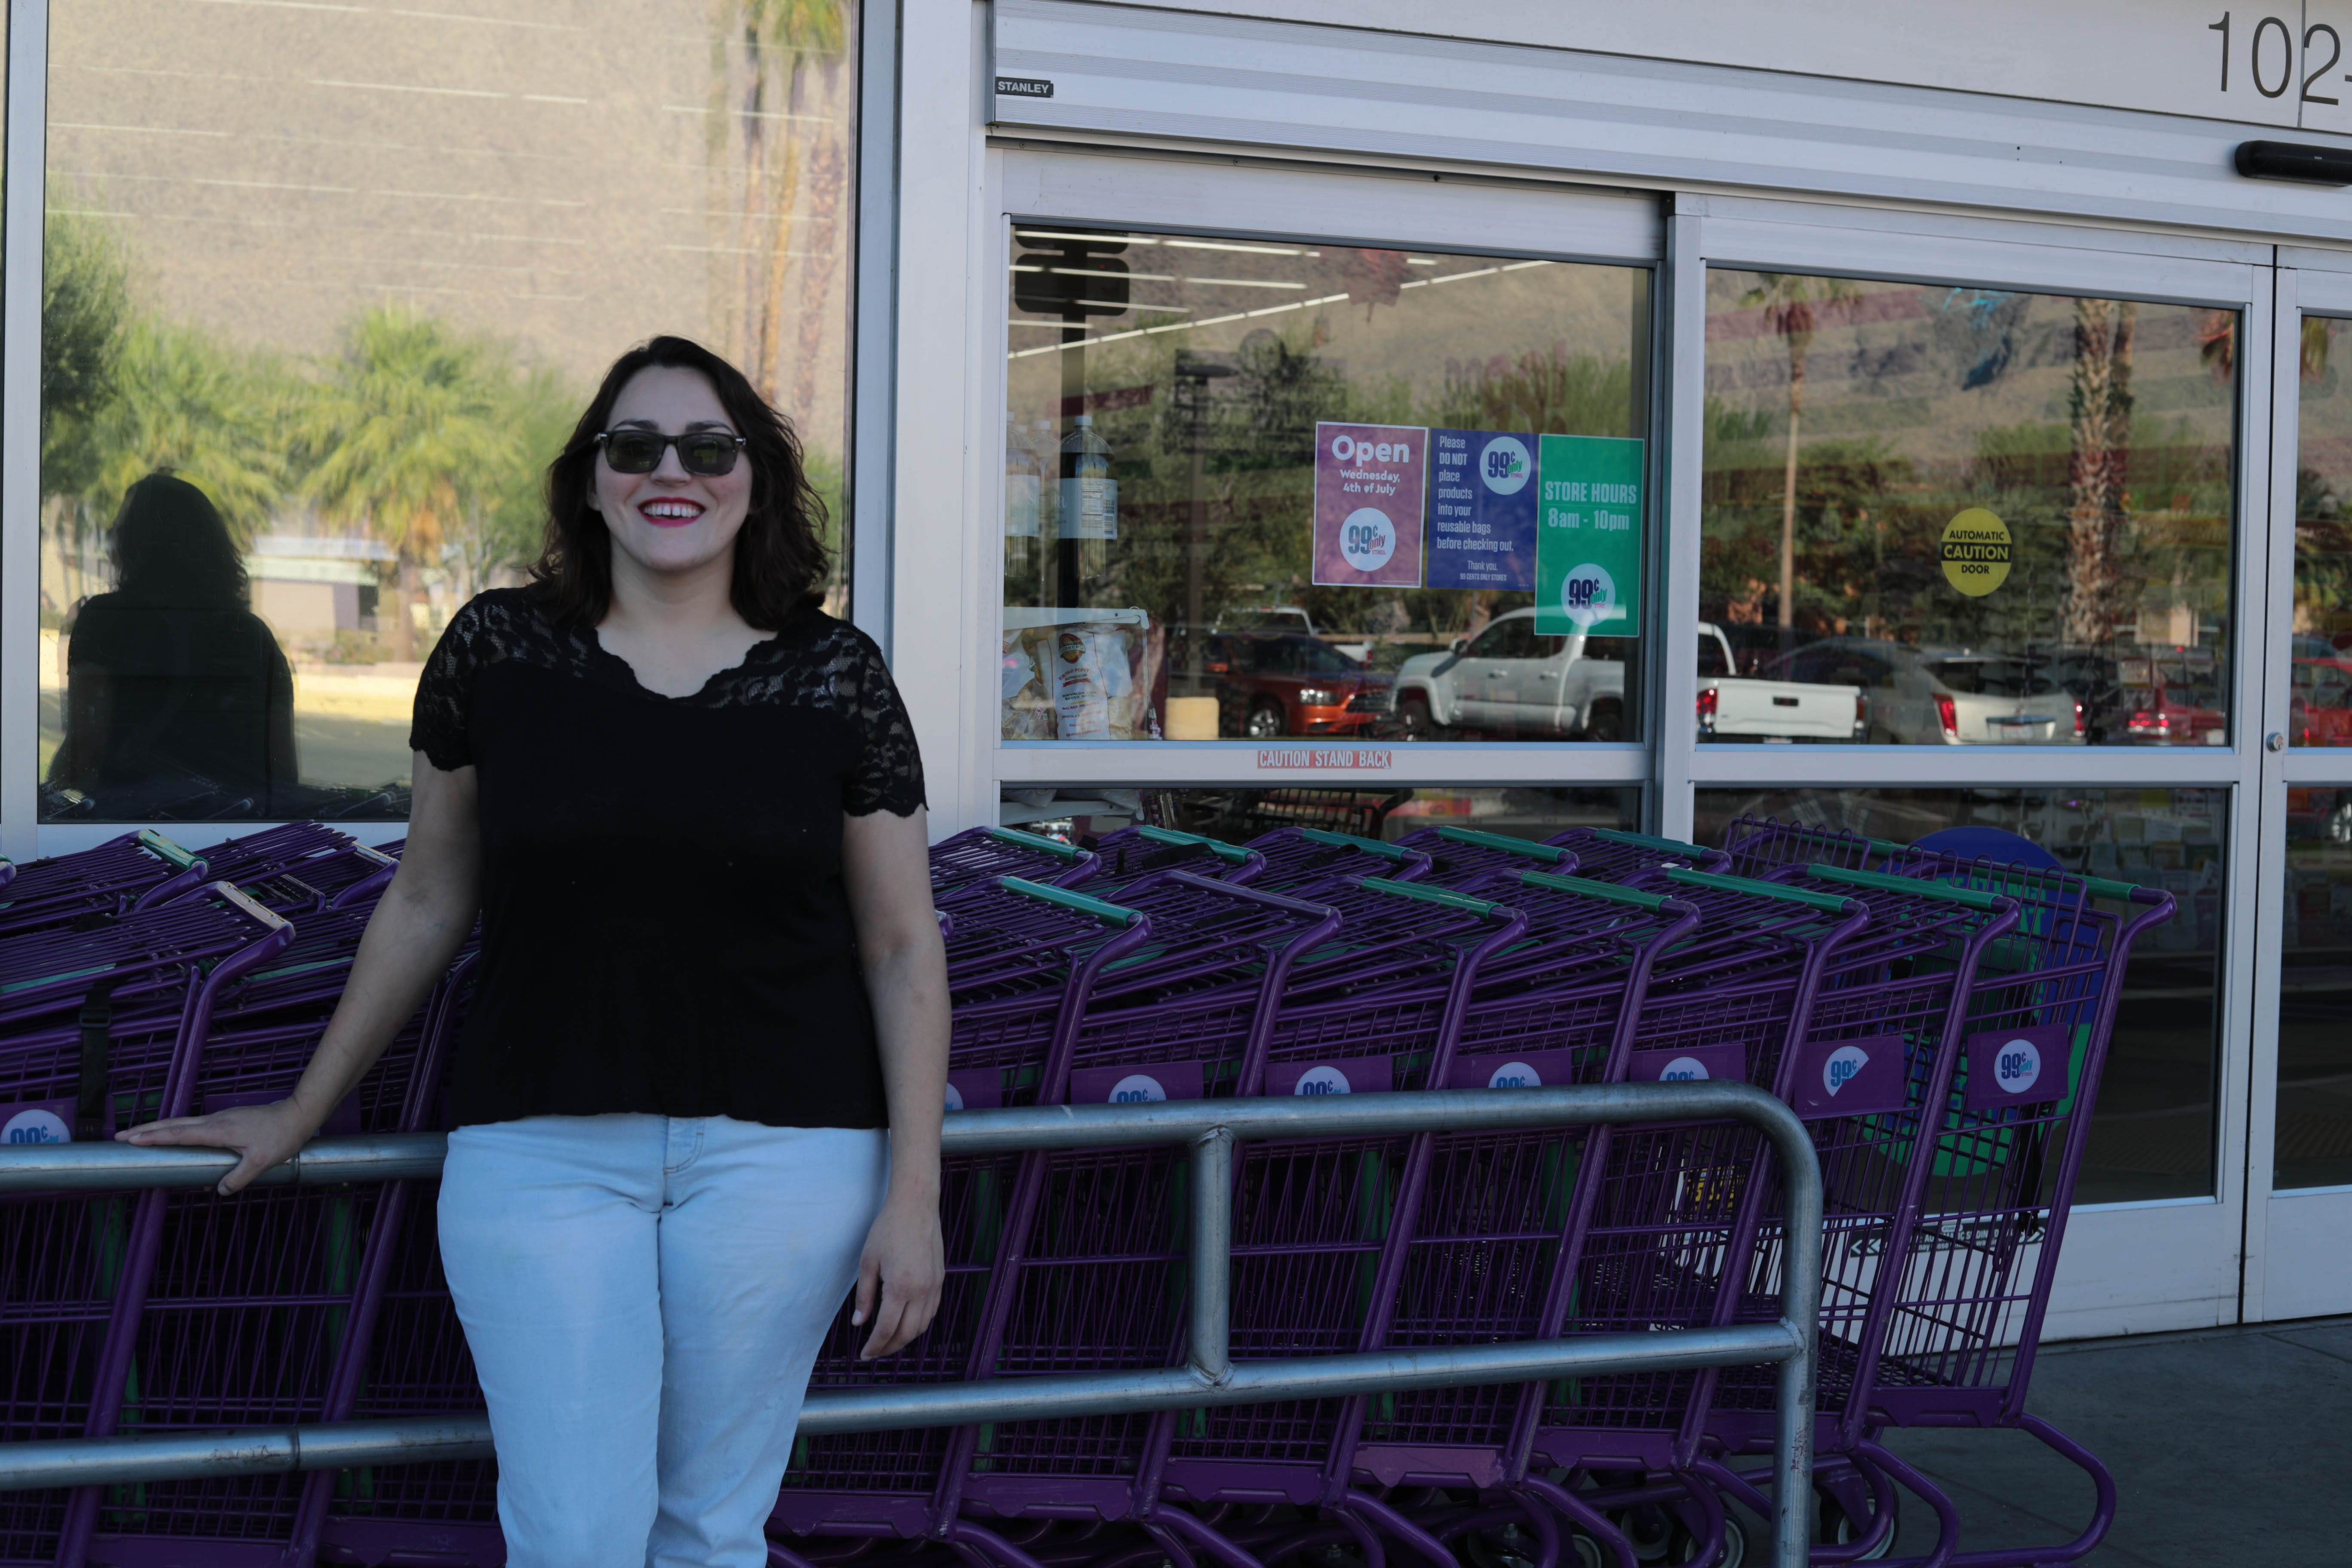 Palm Springs 99 Cents Only Stores Gives Woman Free Second Shopping Spree Heres What It Was Like